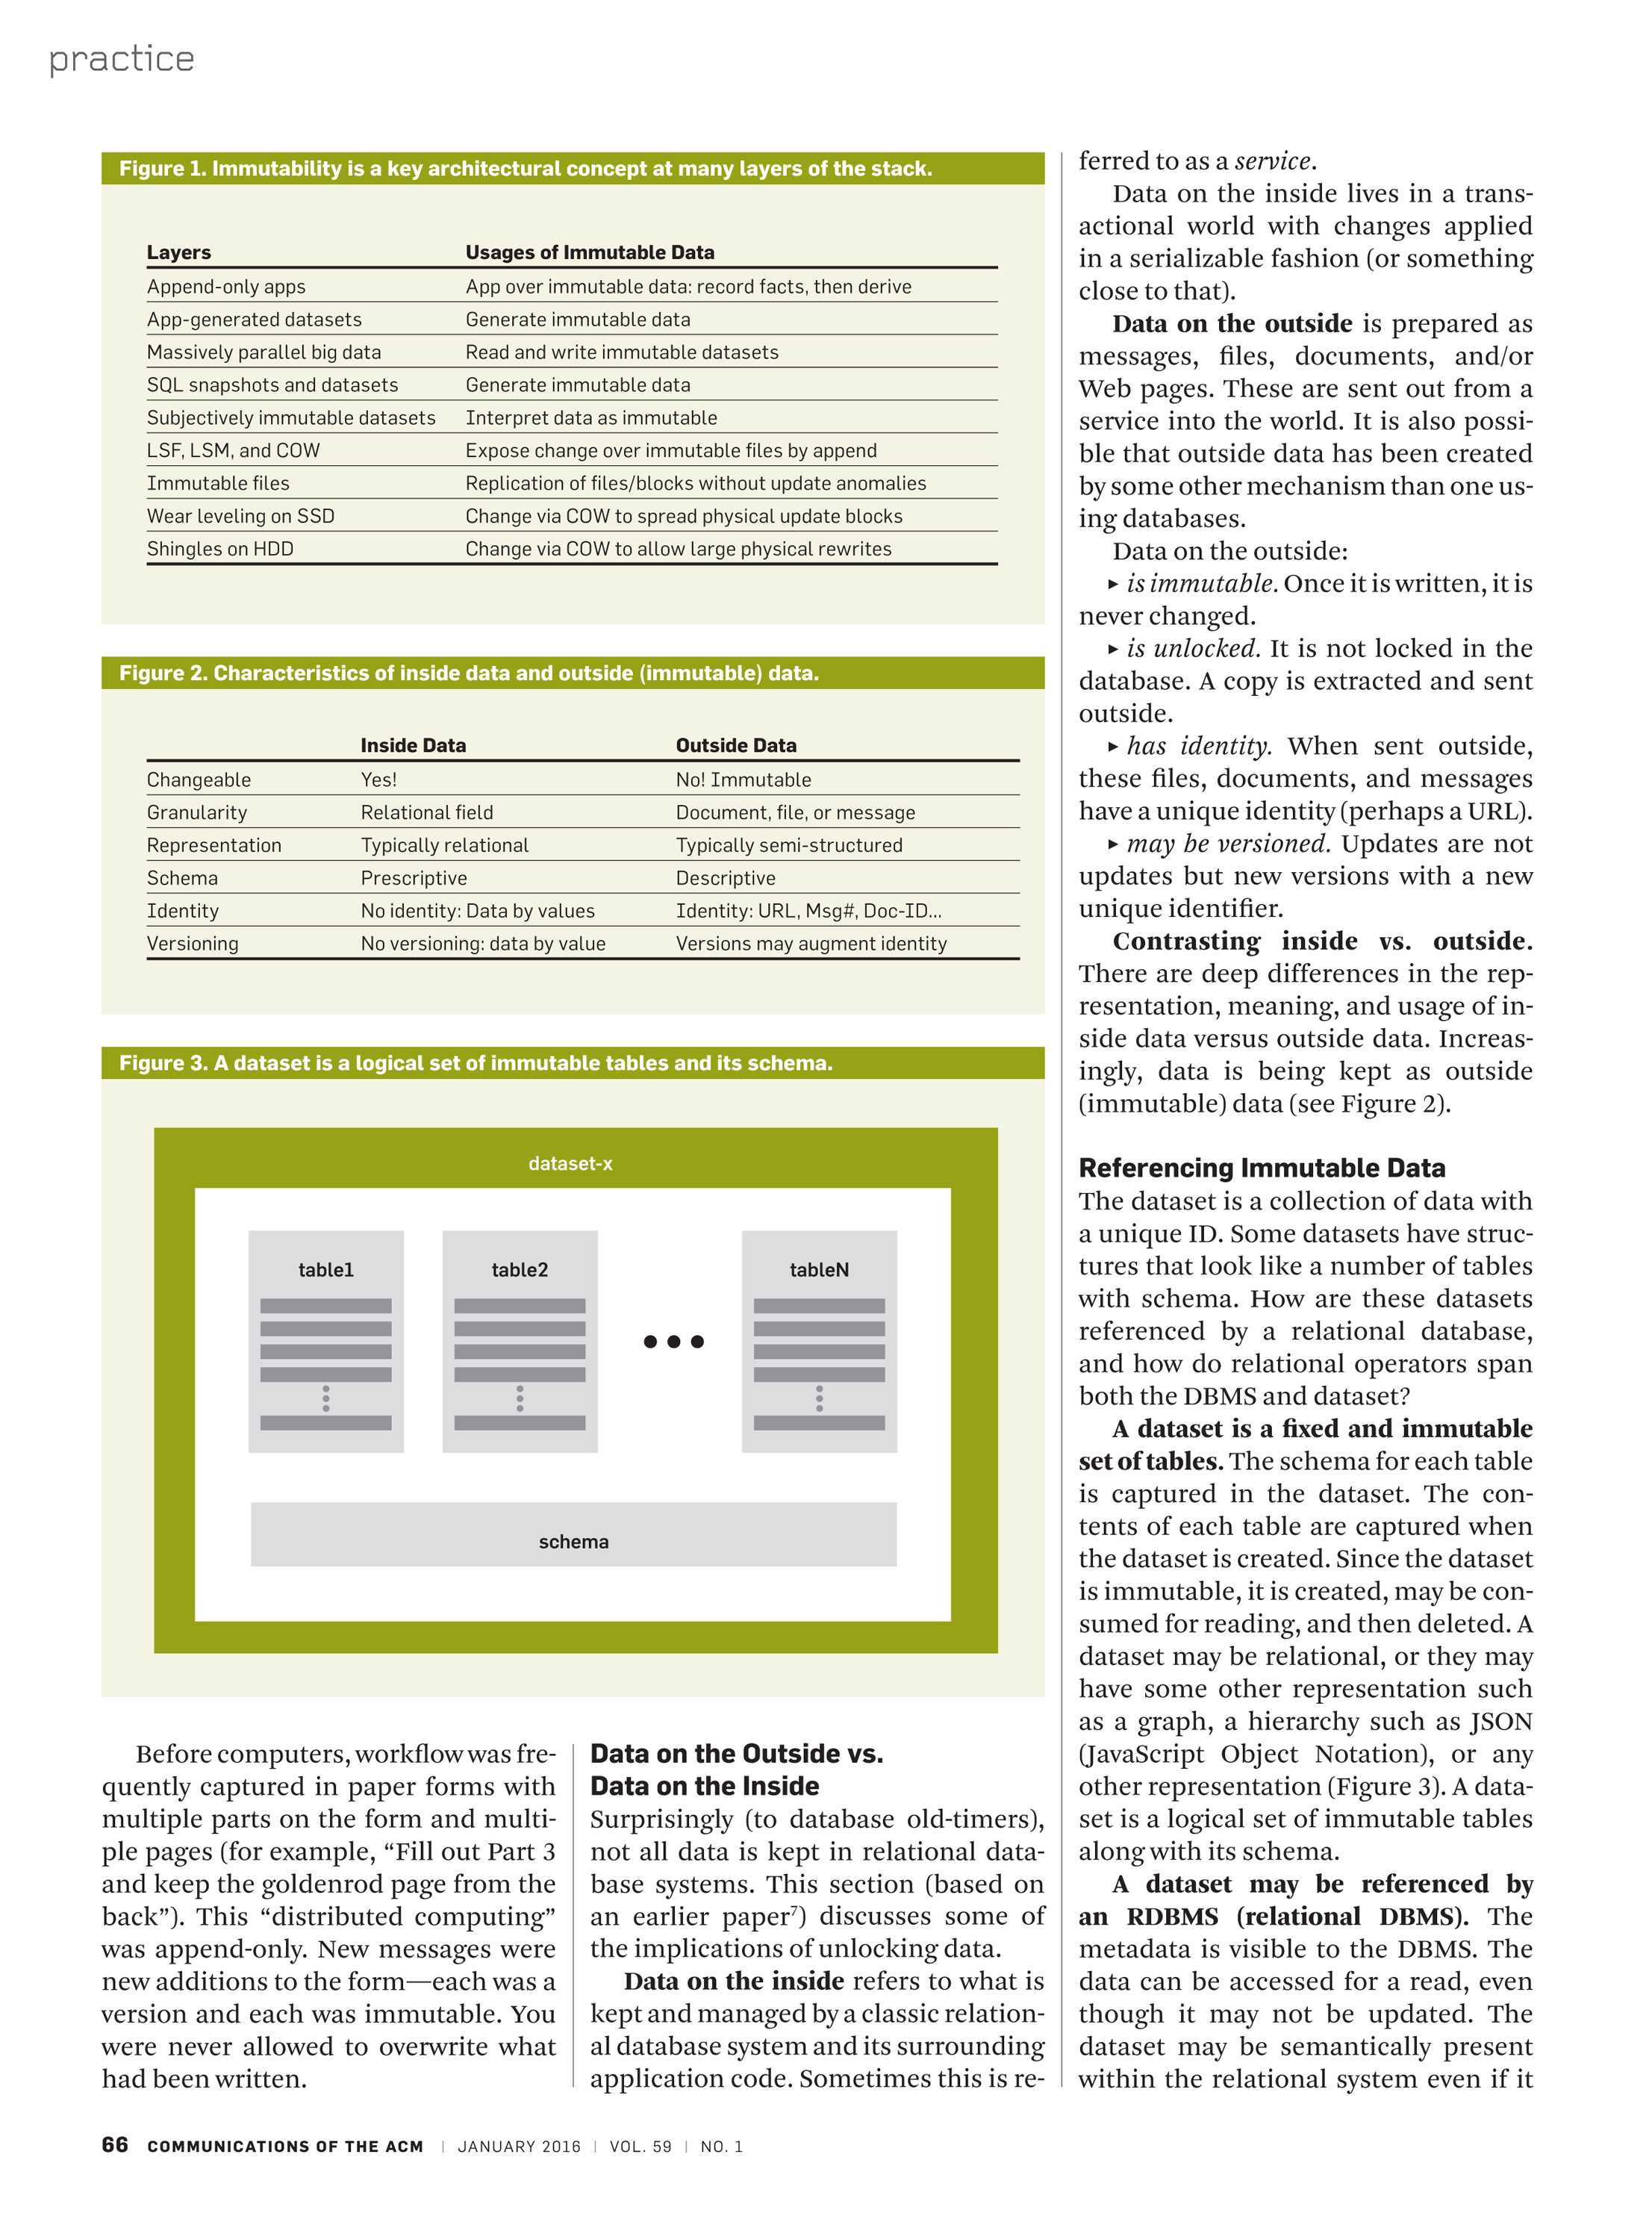 Communications of the ACM - January 2016 - page 66